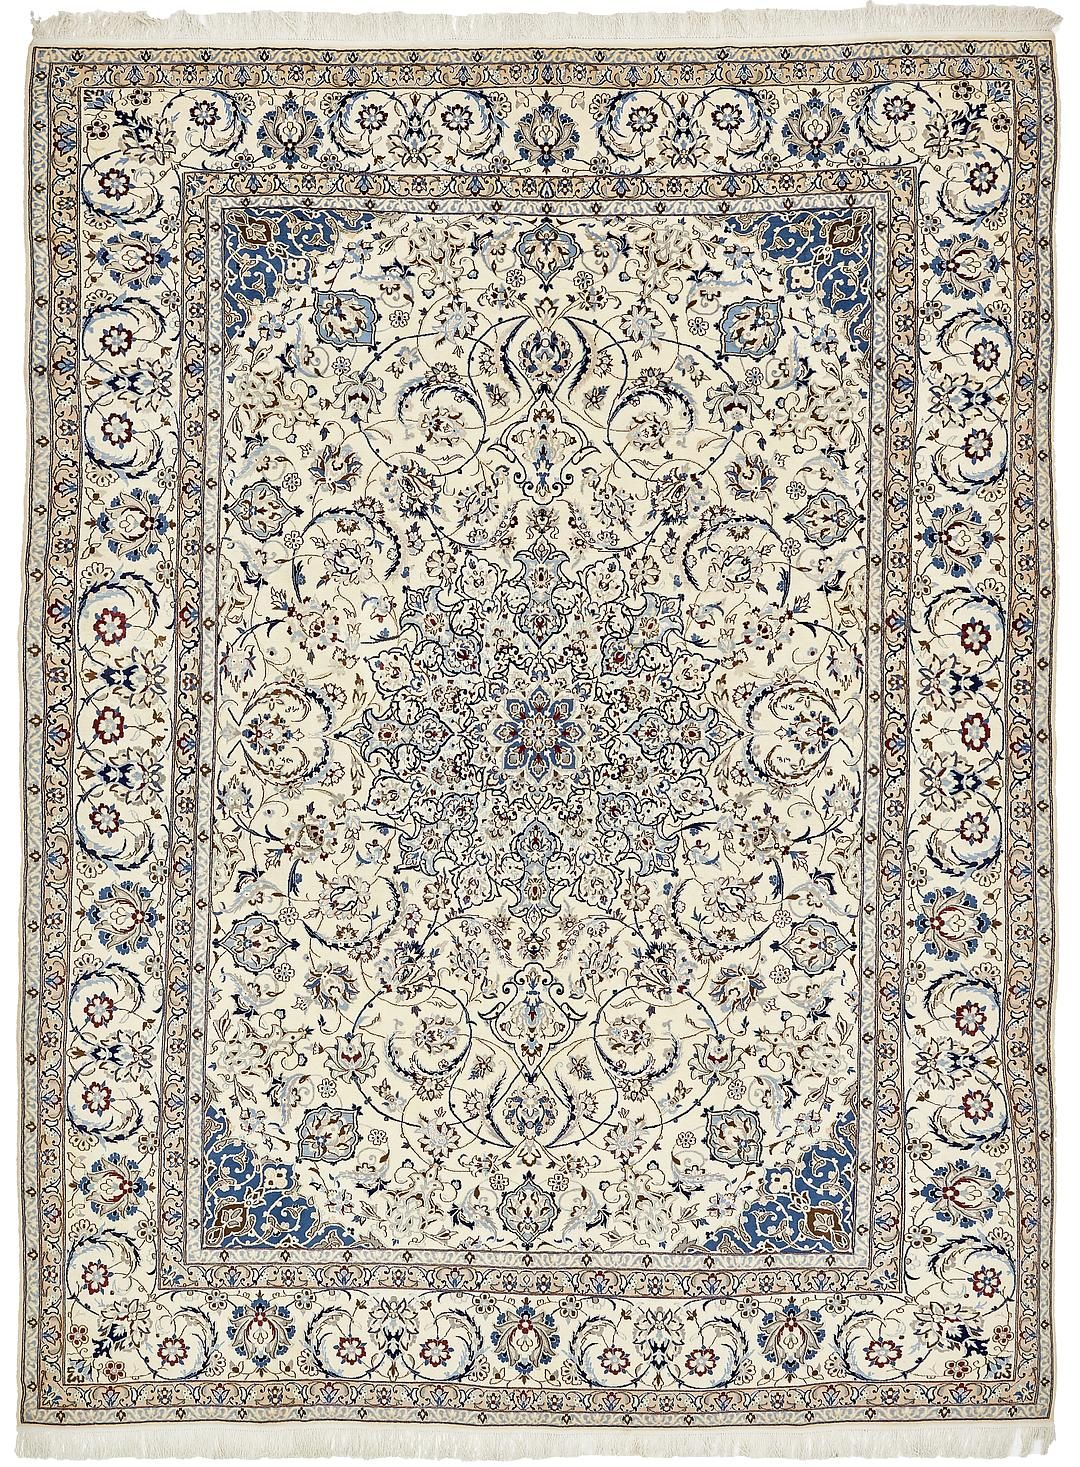 Cream 9 11 X 13 7 Nain Persian Rug Persian Rugs Handknotted Com Rugs Persian Rug Large Area Rugs